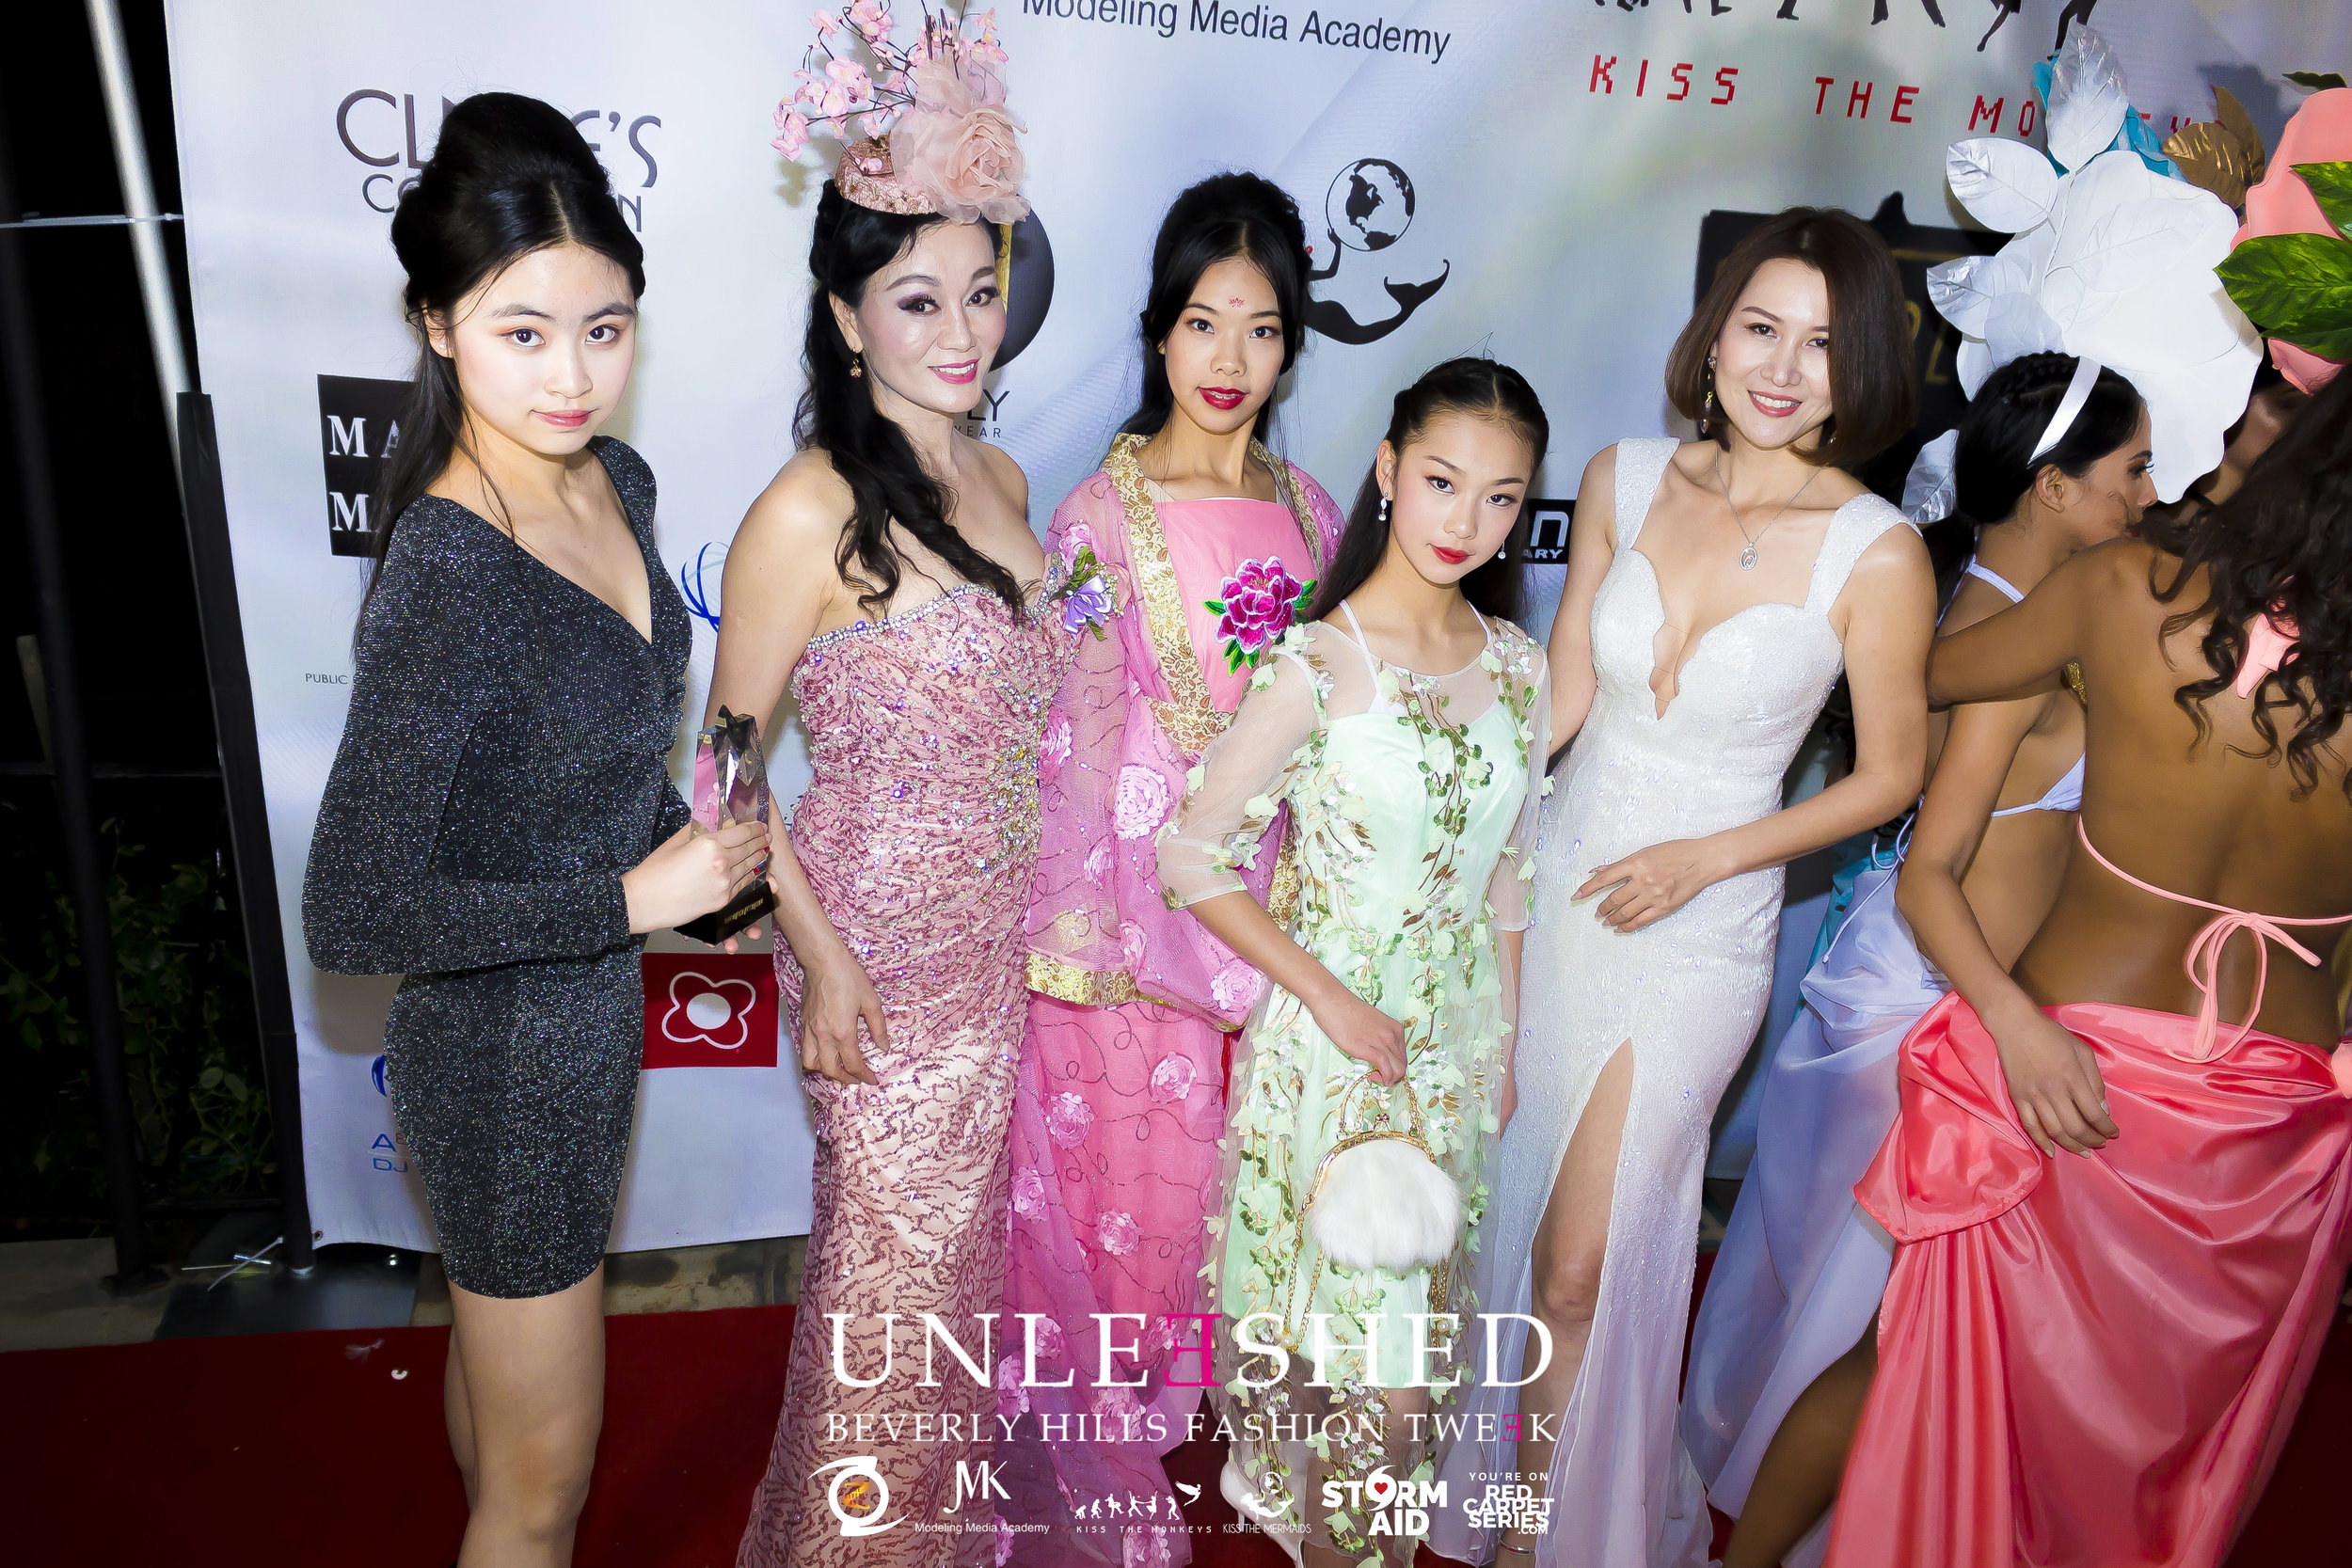 KTM - BH Fashion Tweek + Al's Bday_74 (3).jpg